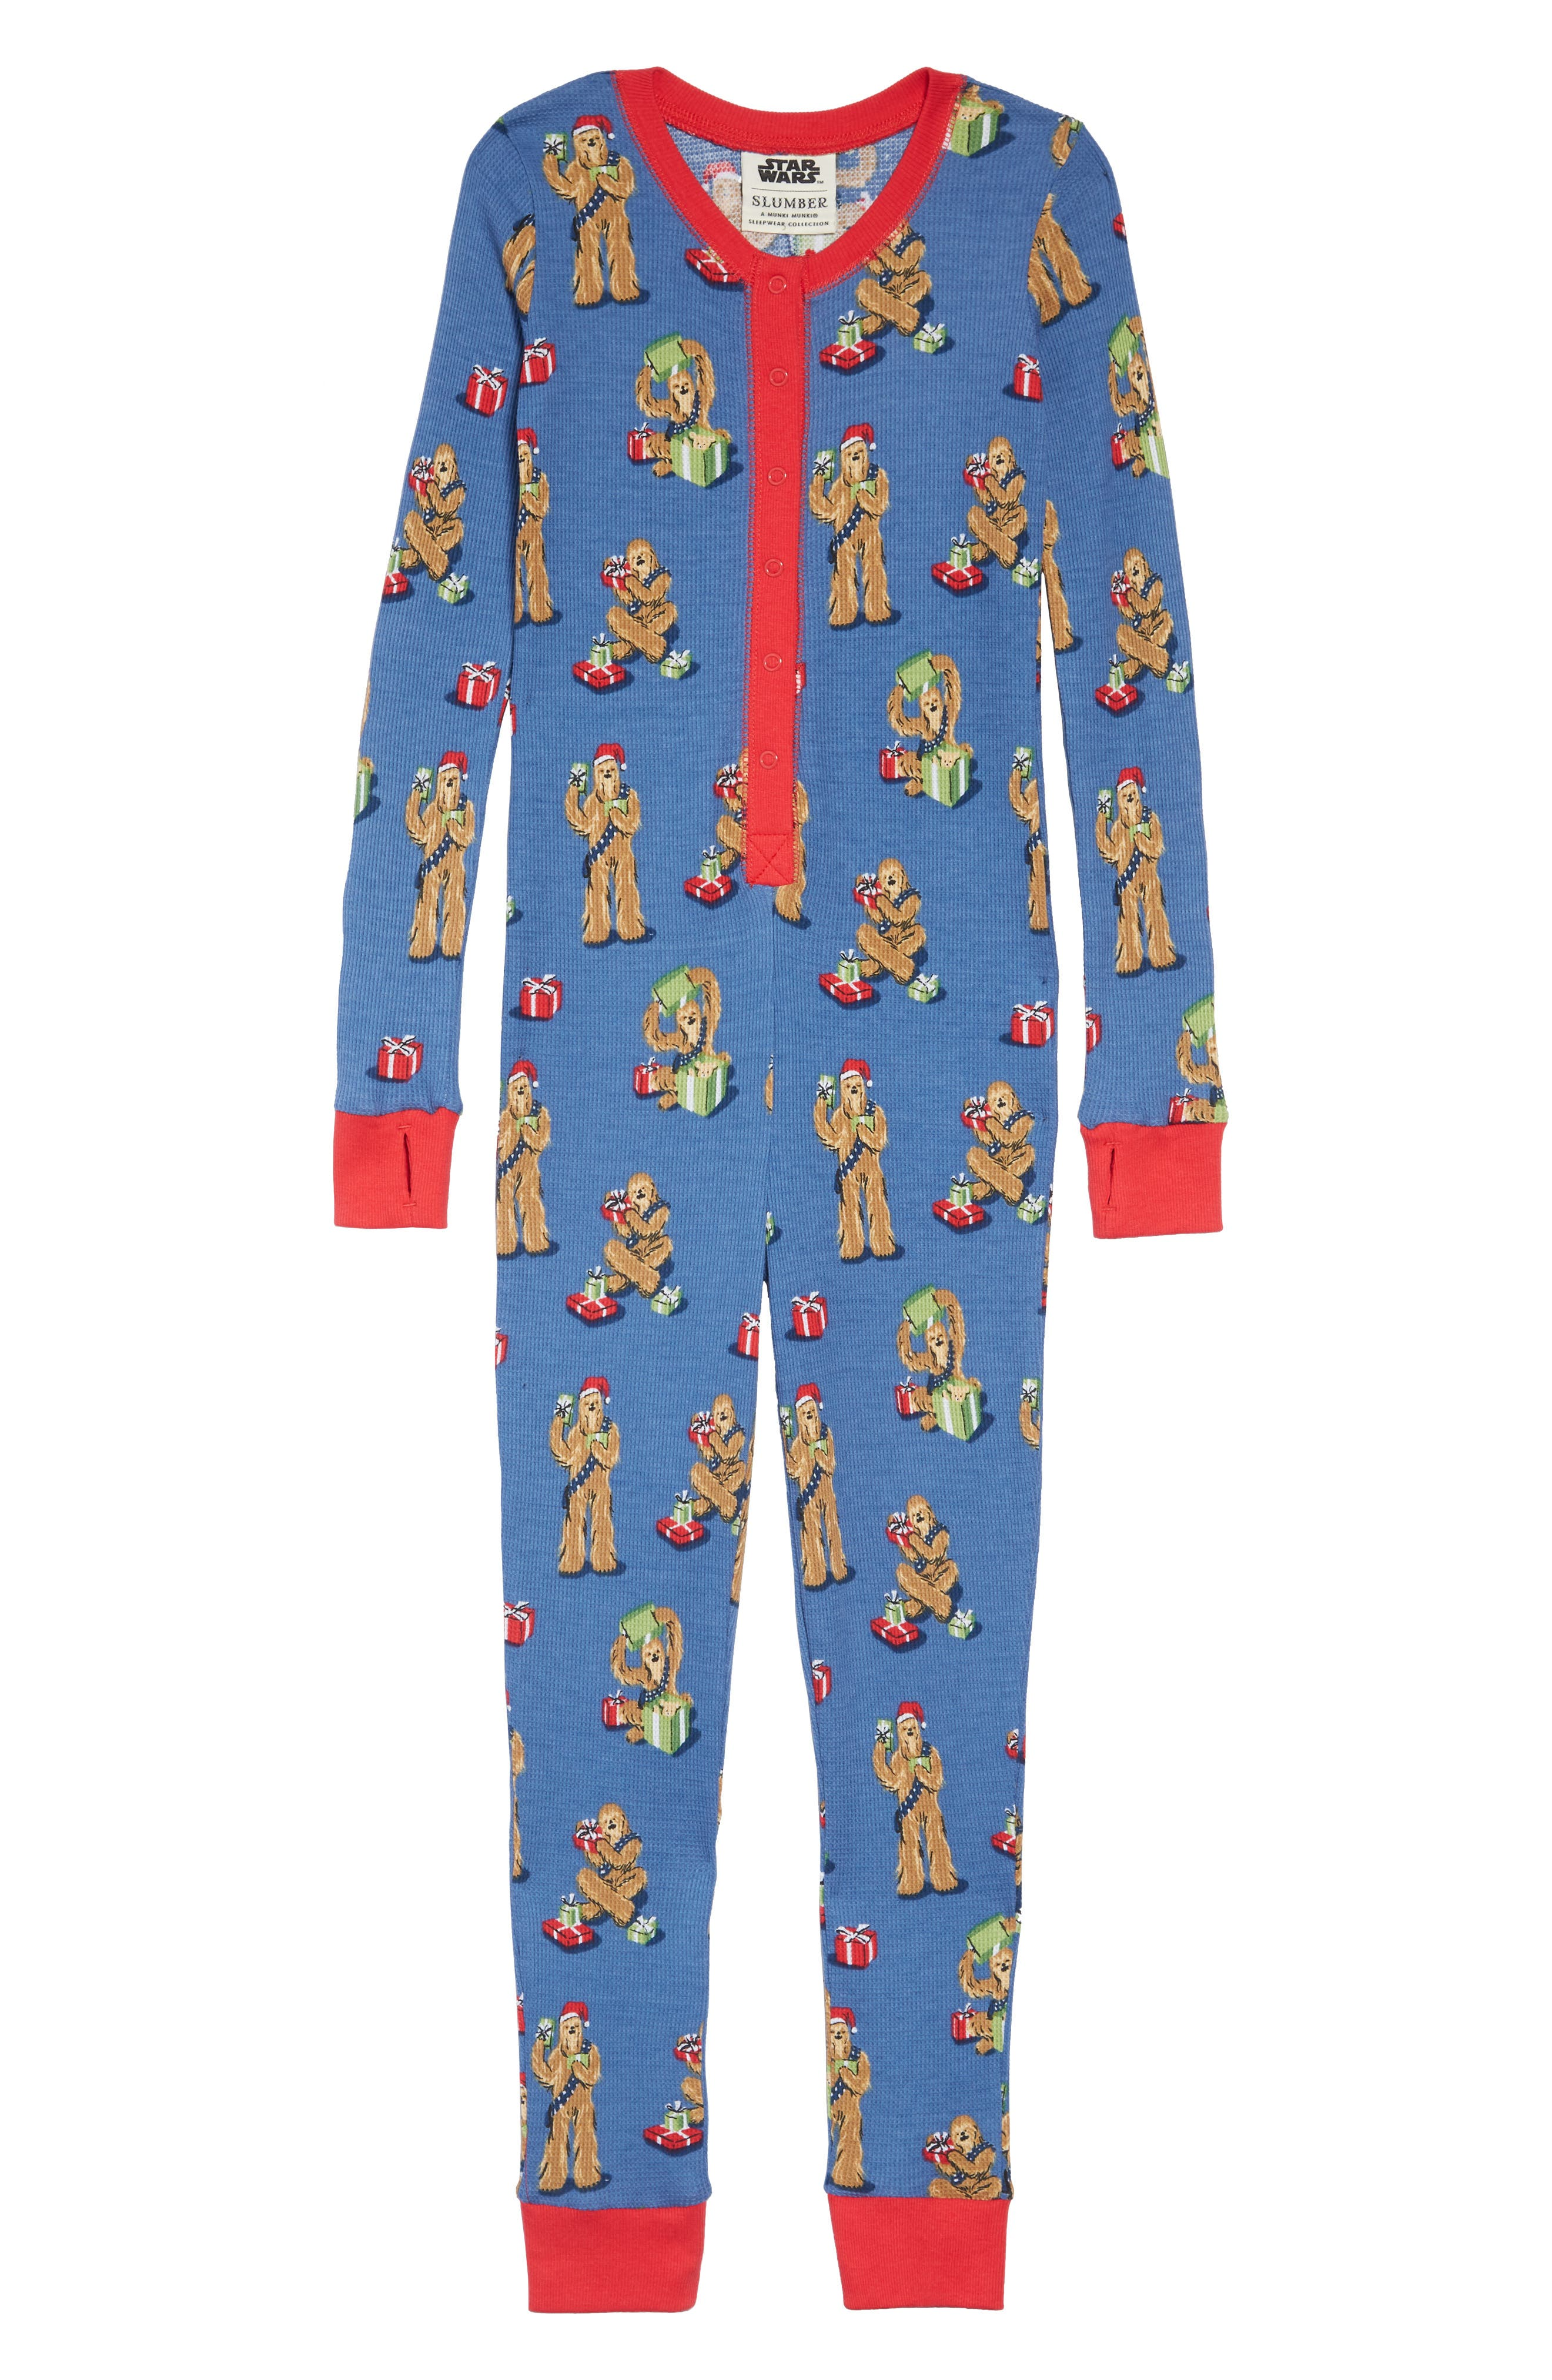 x Star Wars<sup>™</sup> Christmas Chewbacca Fitted One-Piece Pajamas,                             Main thumbnail 1, color,                             409